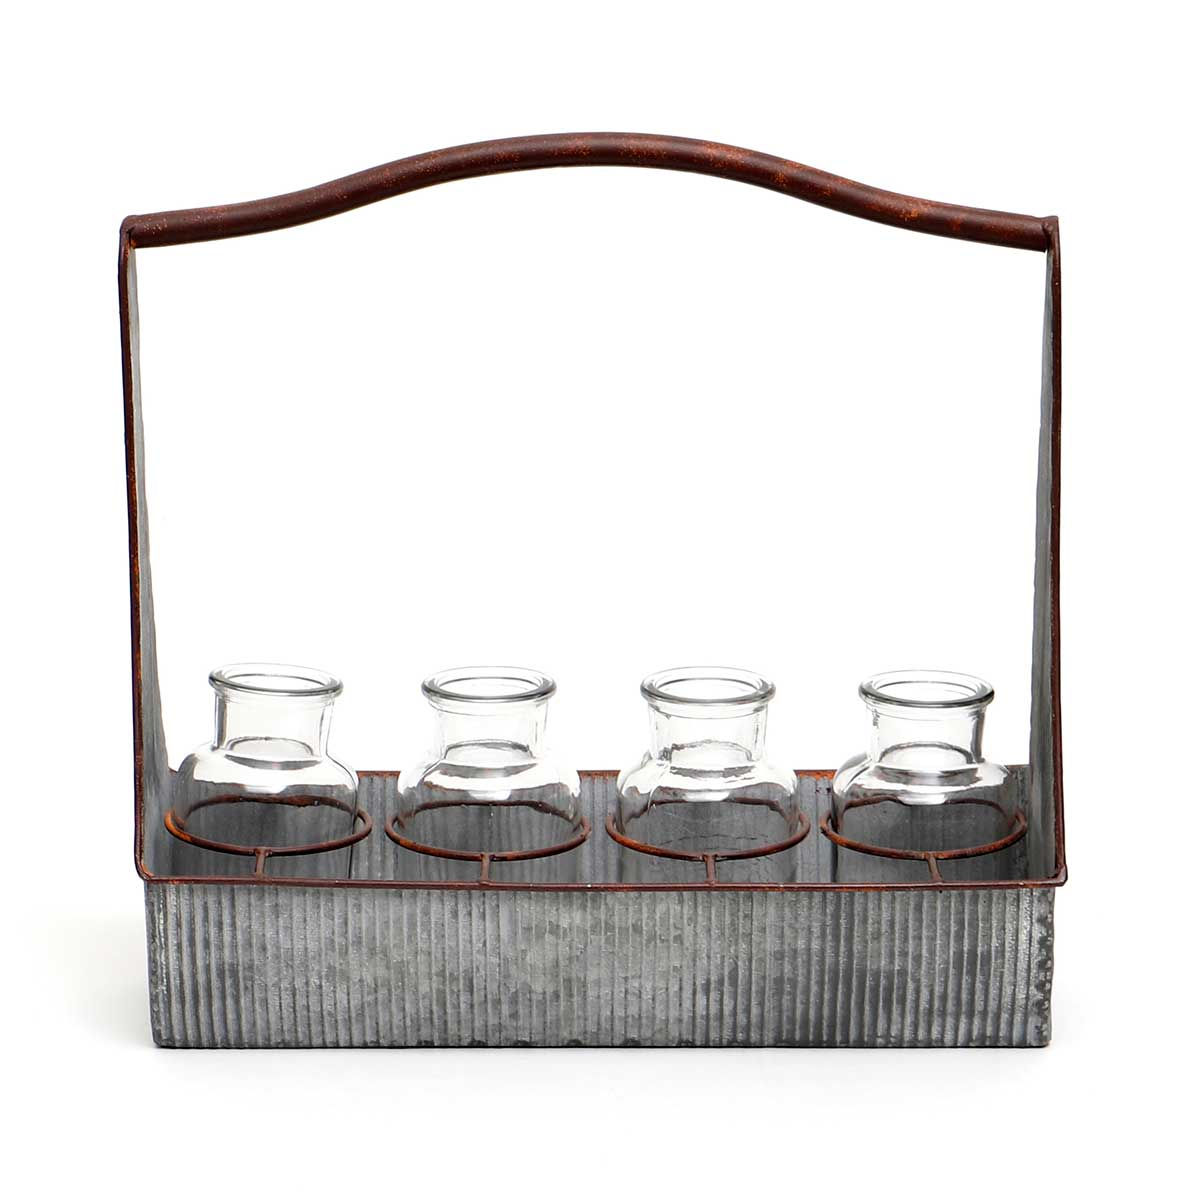 IN BLOOM METAL CARPENTER TRAY WITH 4 GLASS BOTTLES